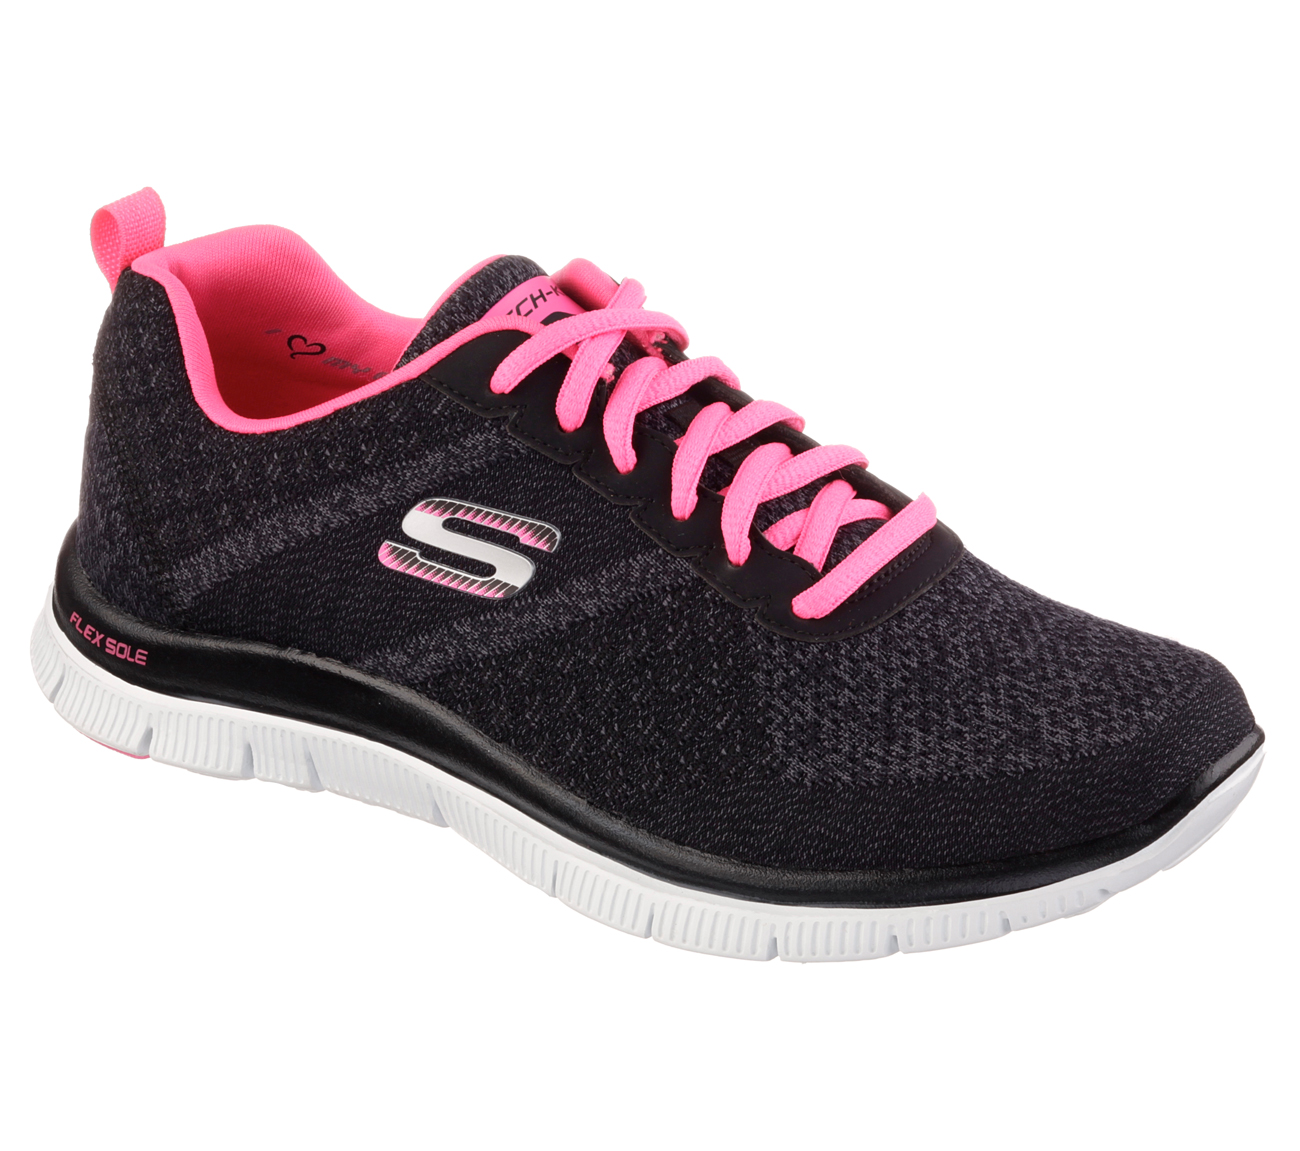 Skechers shoes for boys are designed for comfort and fun. Choose from pillow-like Memory Foam shoes, Mega Blades, Skech-Air and S-Lights styles.